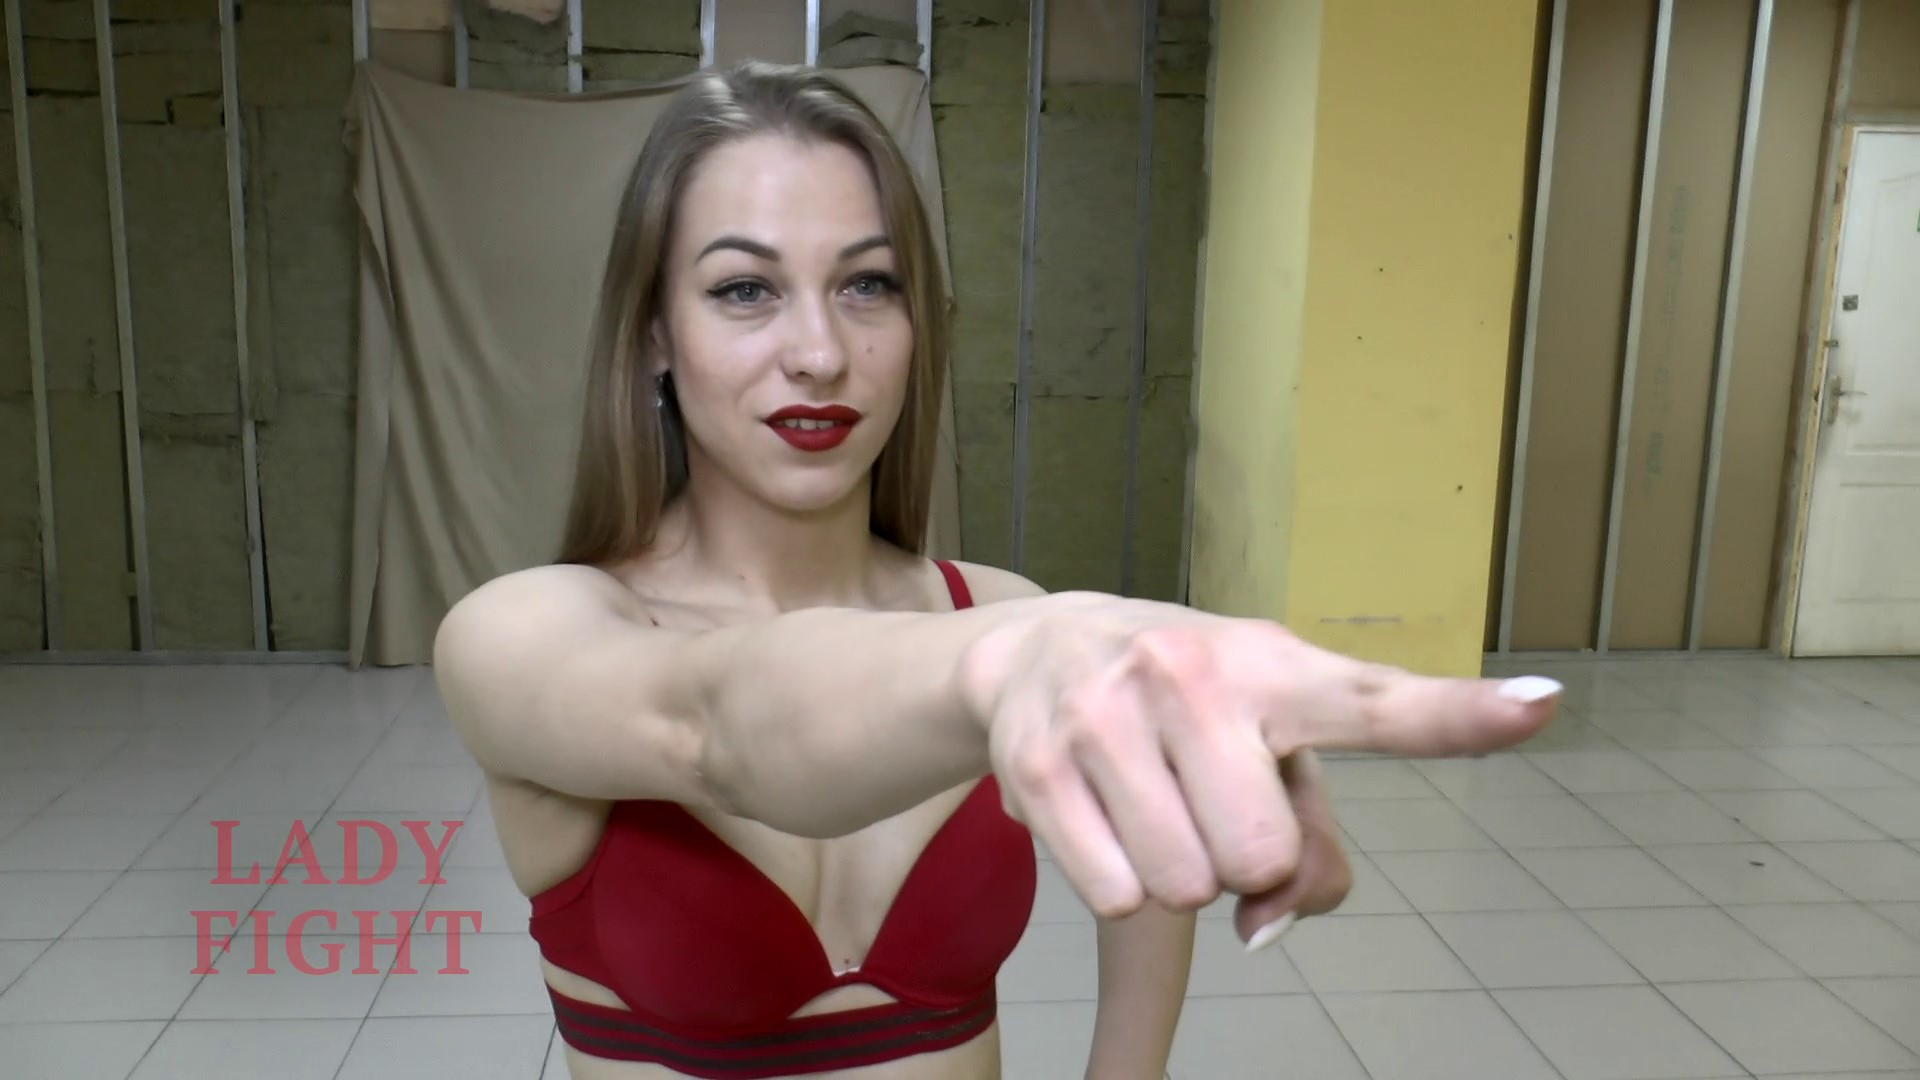 LADYFIGHT-Deadly-Wrestling-For-Lora-4